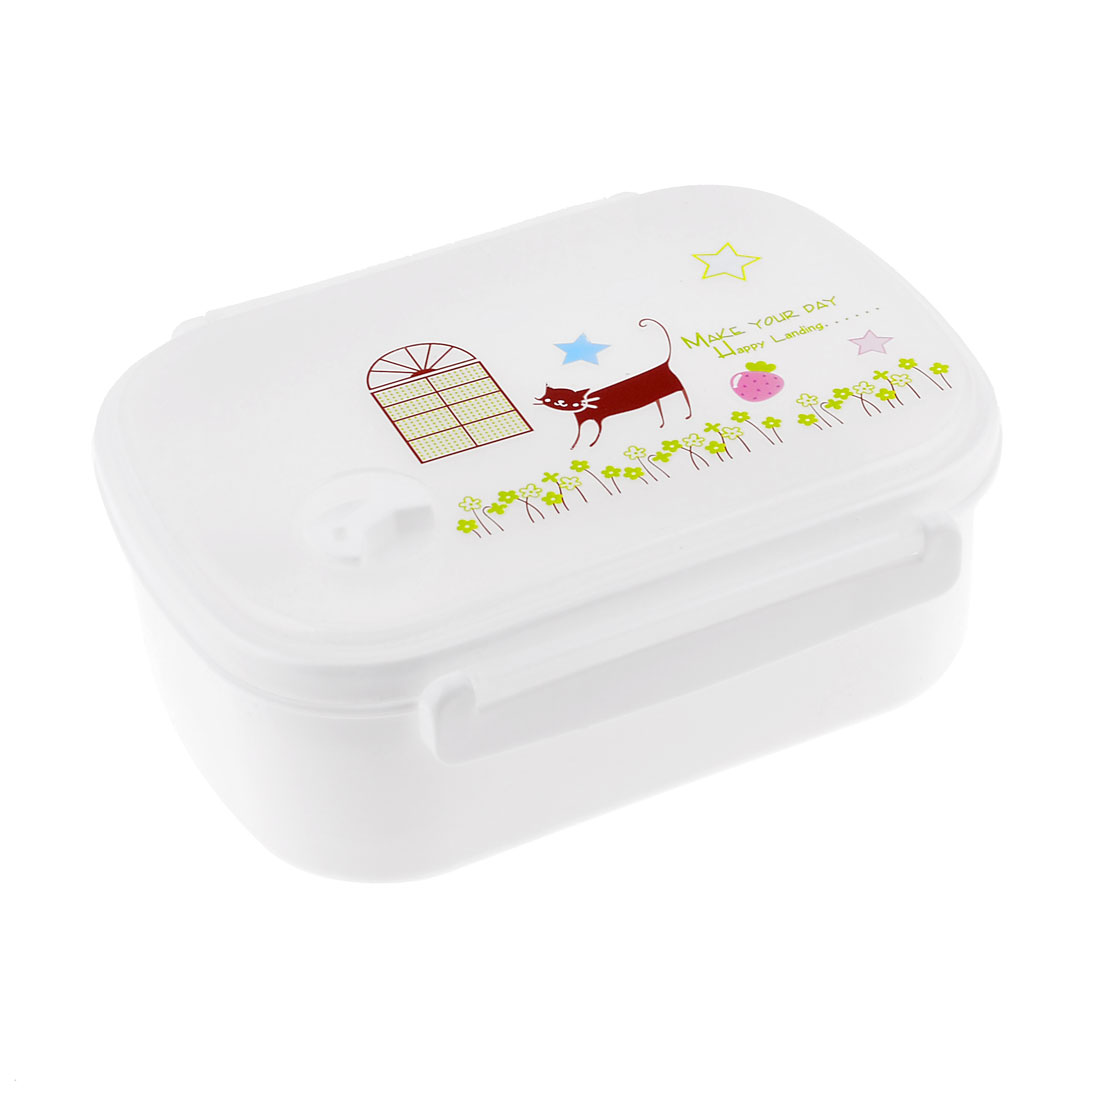 Portable White Plastic Flower Star Cat Letter Pattern Lunch Box Case w Spoon